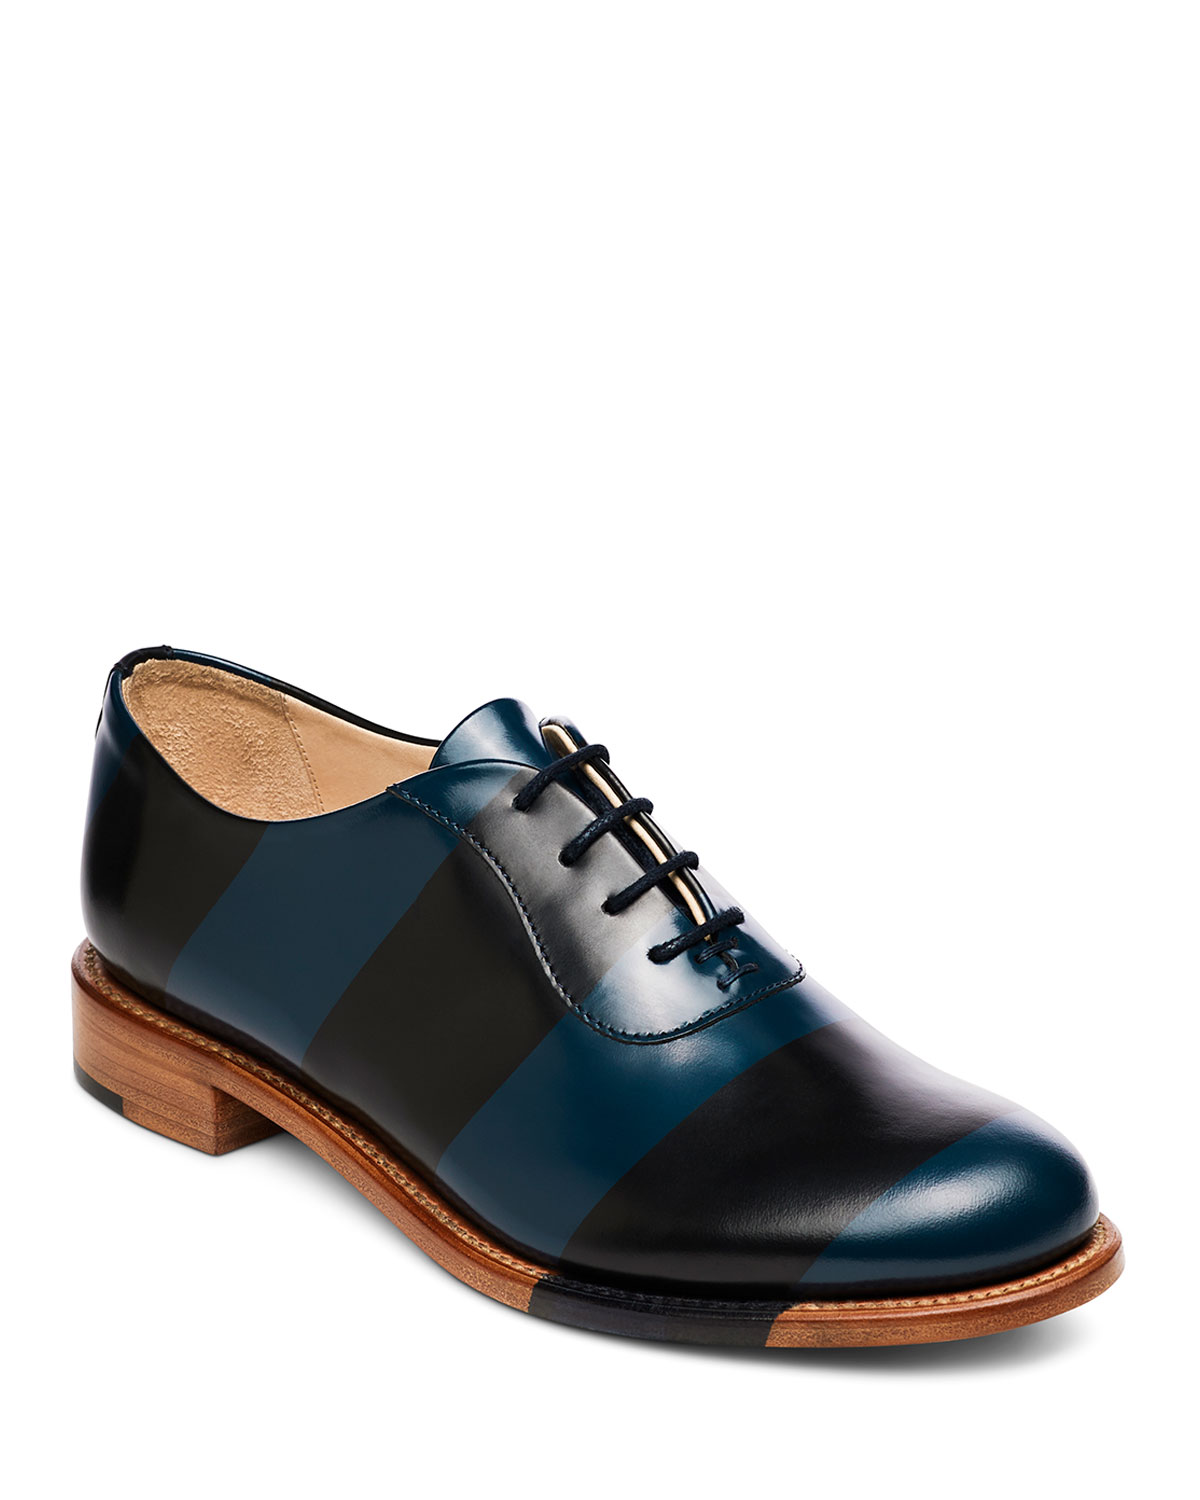 The Office Of Angela Scott MR. SMITH STRIPED LEATHER OXFORDS